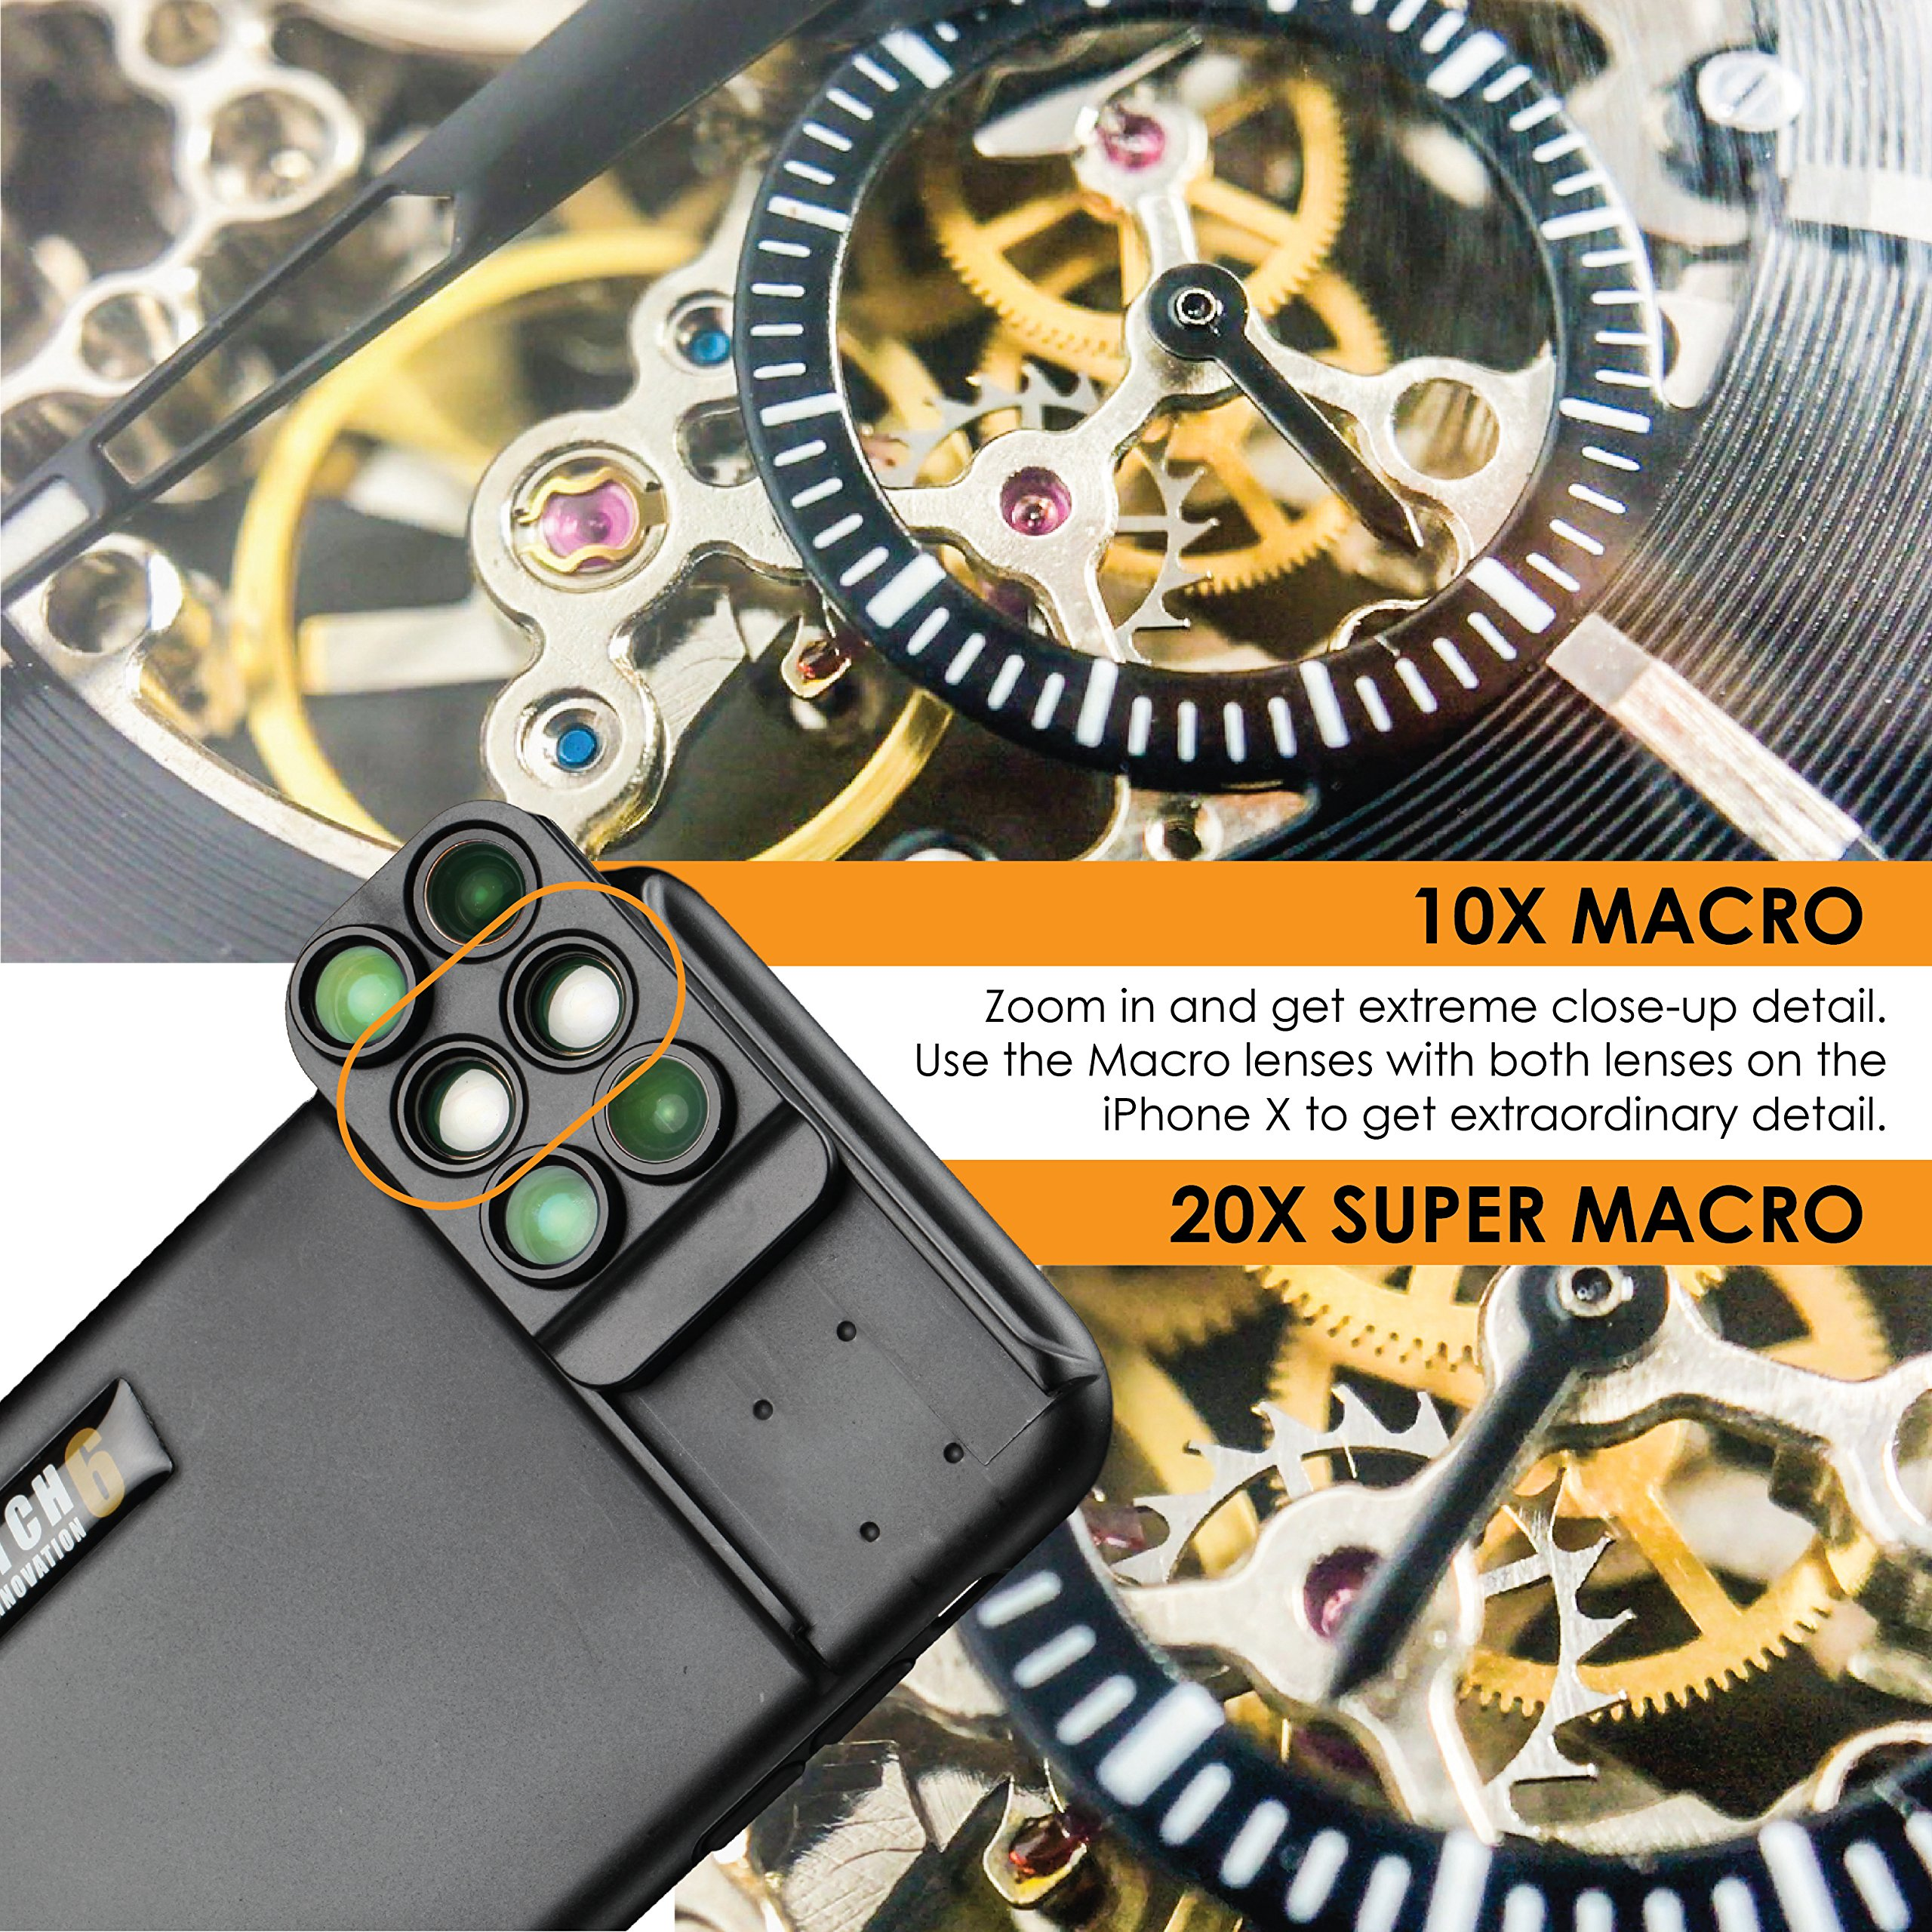 Ztylus Switch 6 for Apple iPhone X: 6 in 1 Dual Optics Lens System (Fisheye, Telephoto, Wide-angle, Macro and Super Macro), Double Layer Protection (Black) by Ztylus (Image #5)